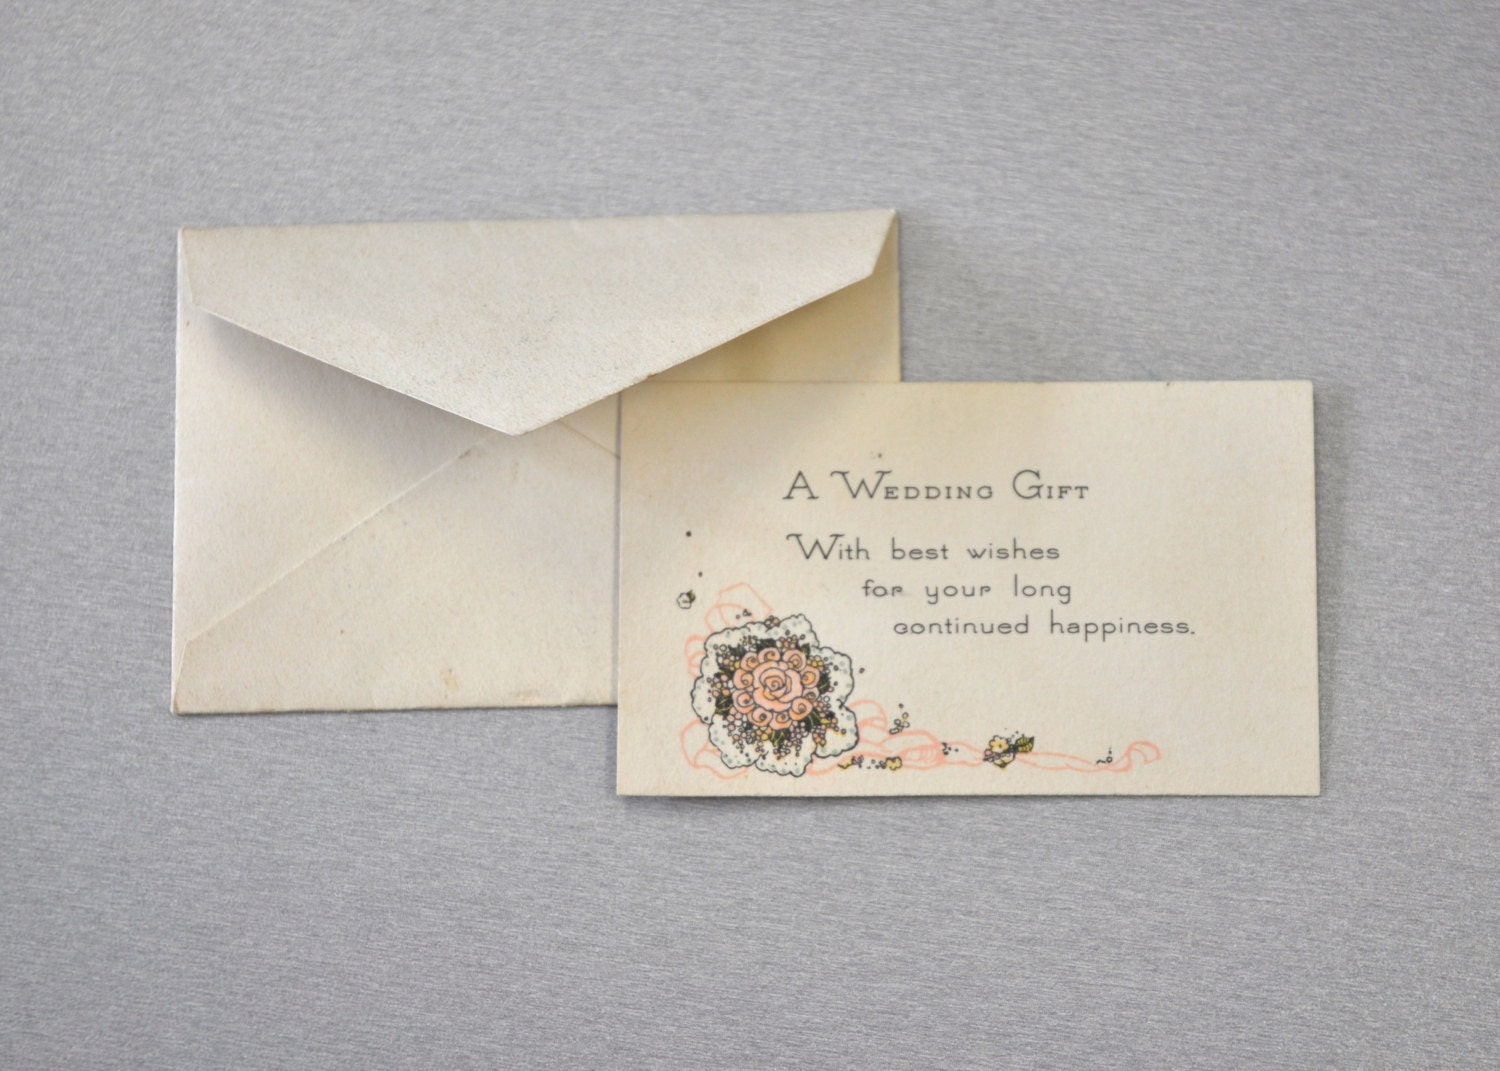 Wedding Gift Cards Online: Tiny Vintage Wedding Gift Card With Envelope